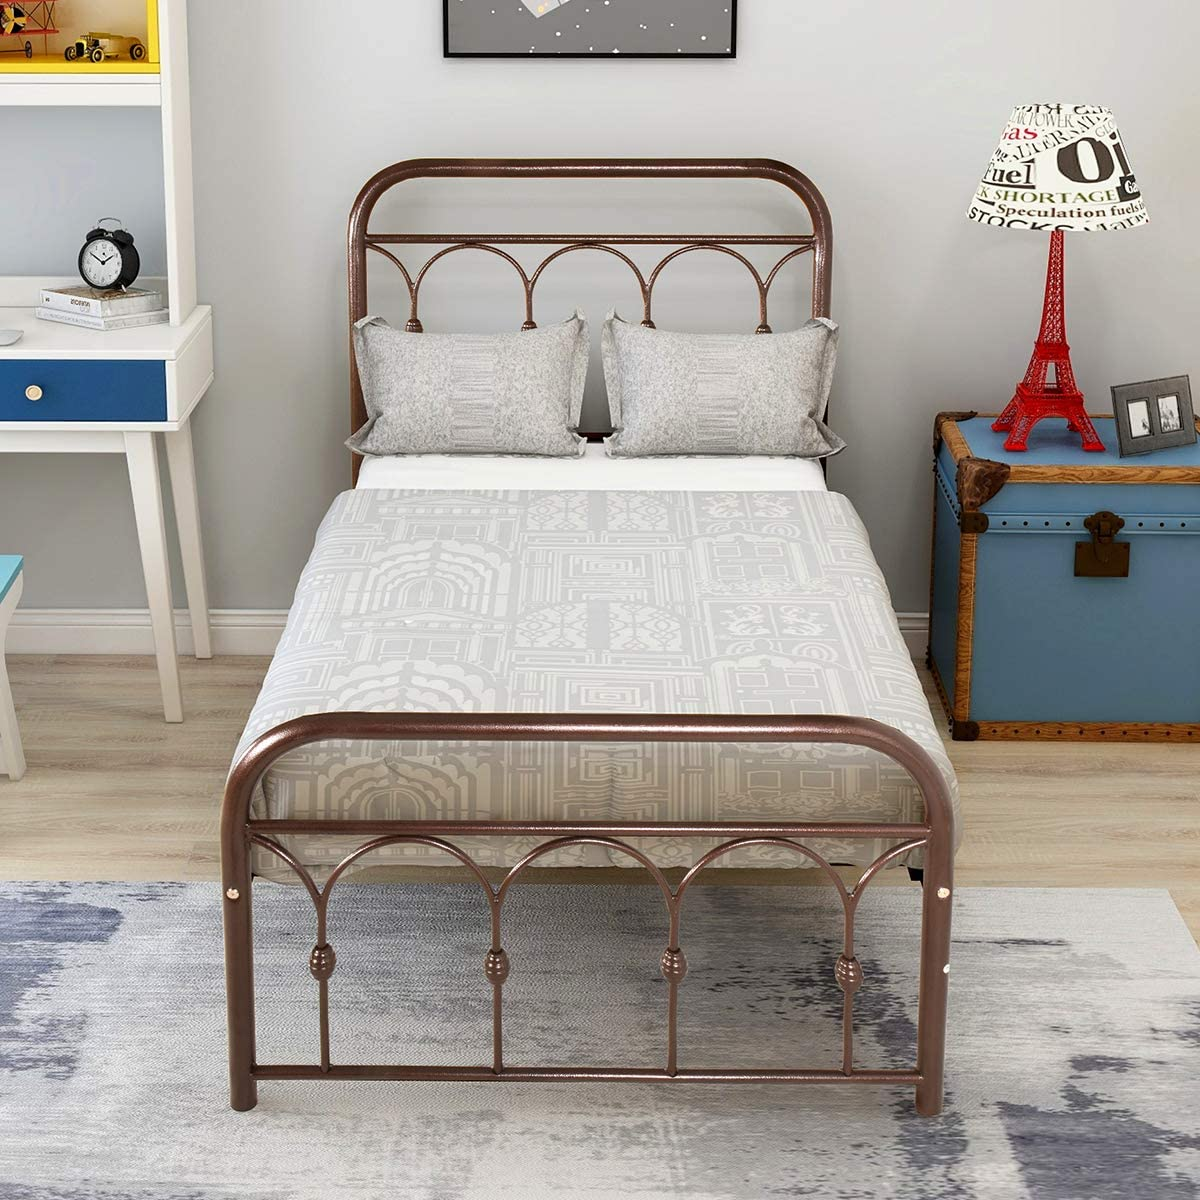 DUMEE Metal Bed Frame Queen Size Platform with Vintage Headboard and Footboard Sturdy Metal Frame Premium Steel Slat Support,Antique Brown